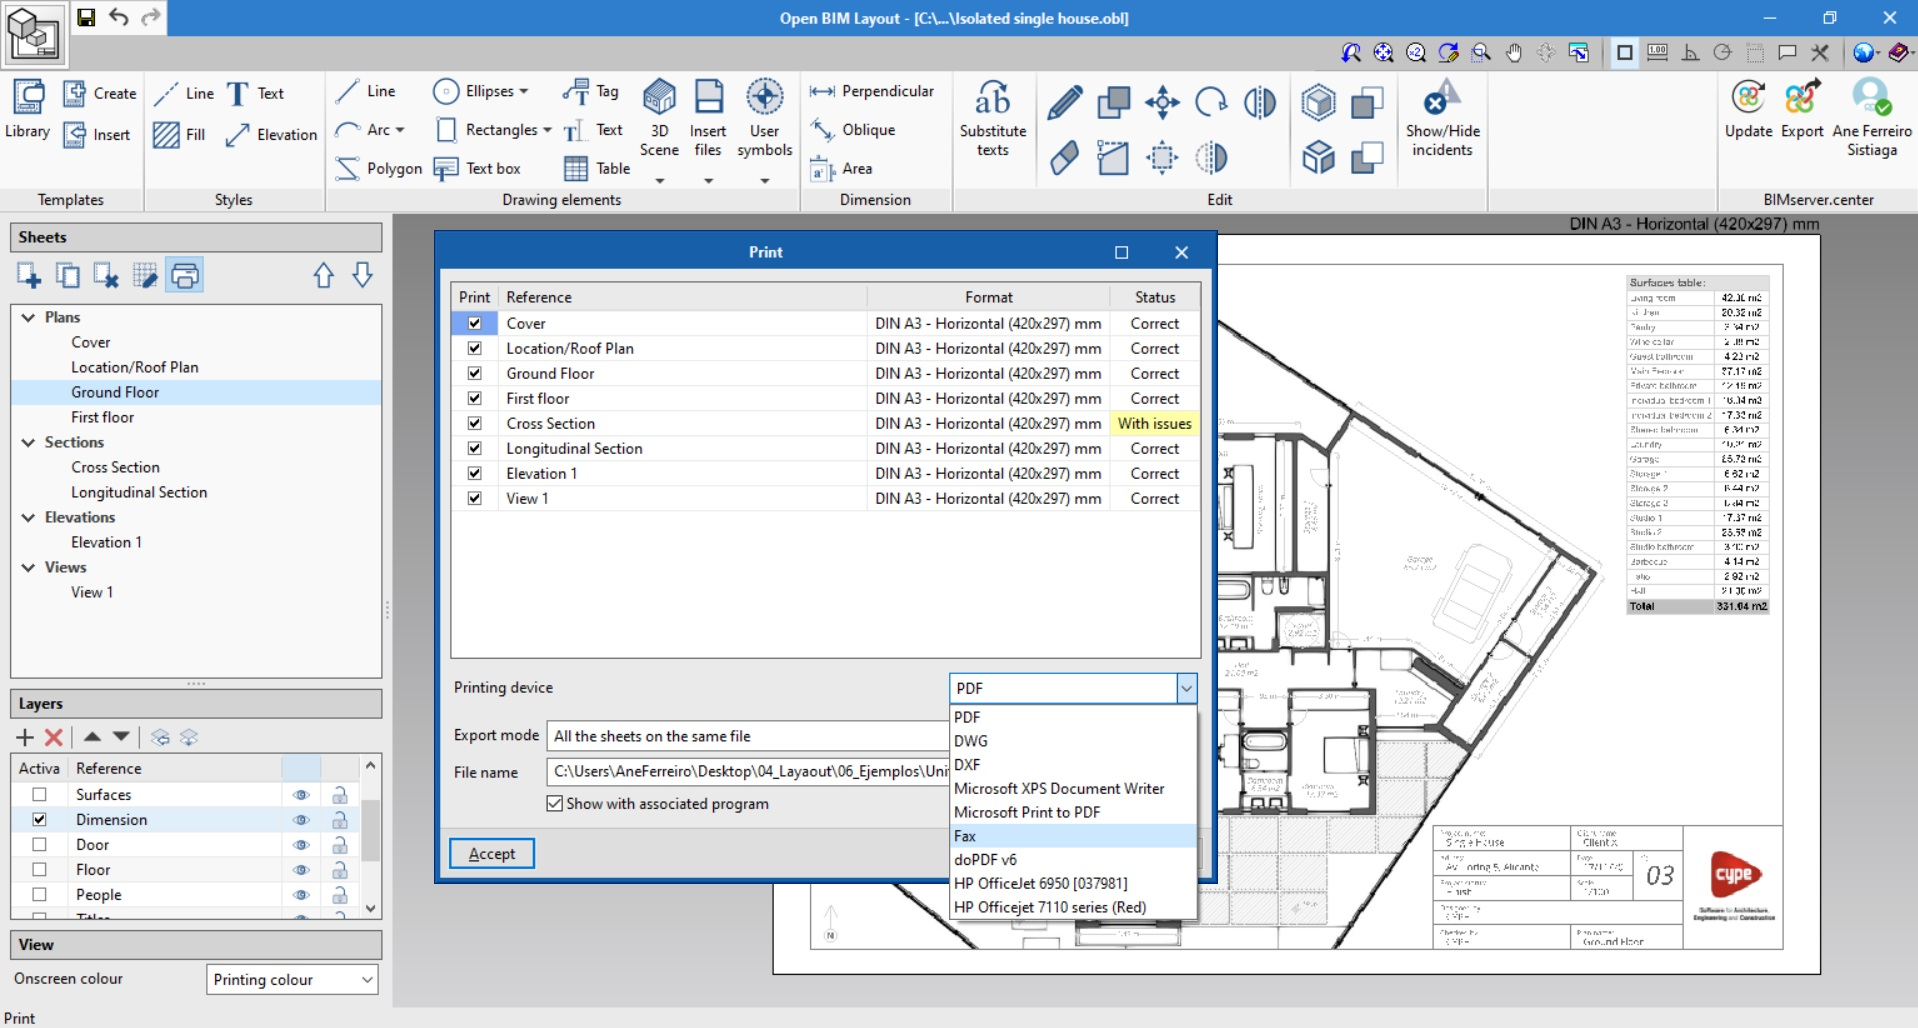 Open BIM Layout. How to print with Open BIM Layout